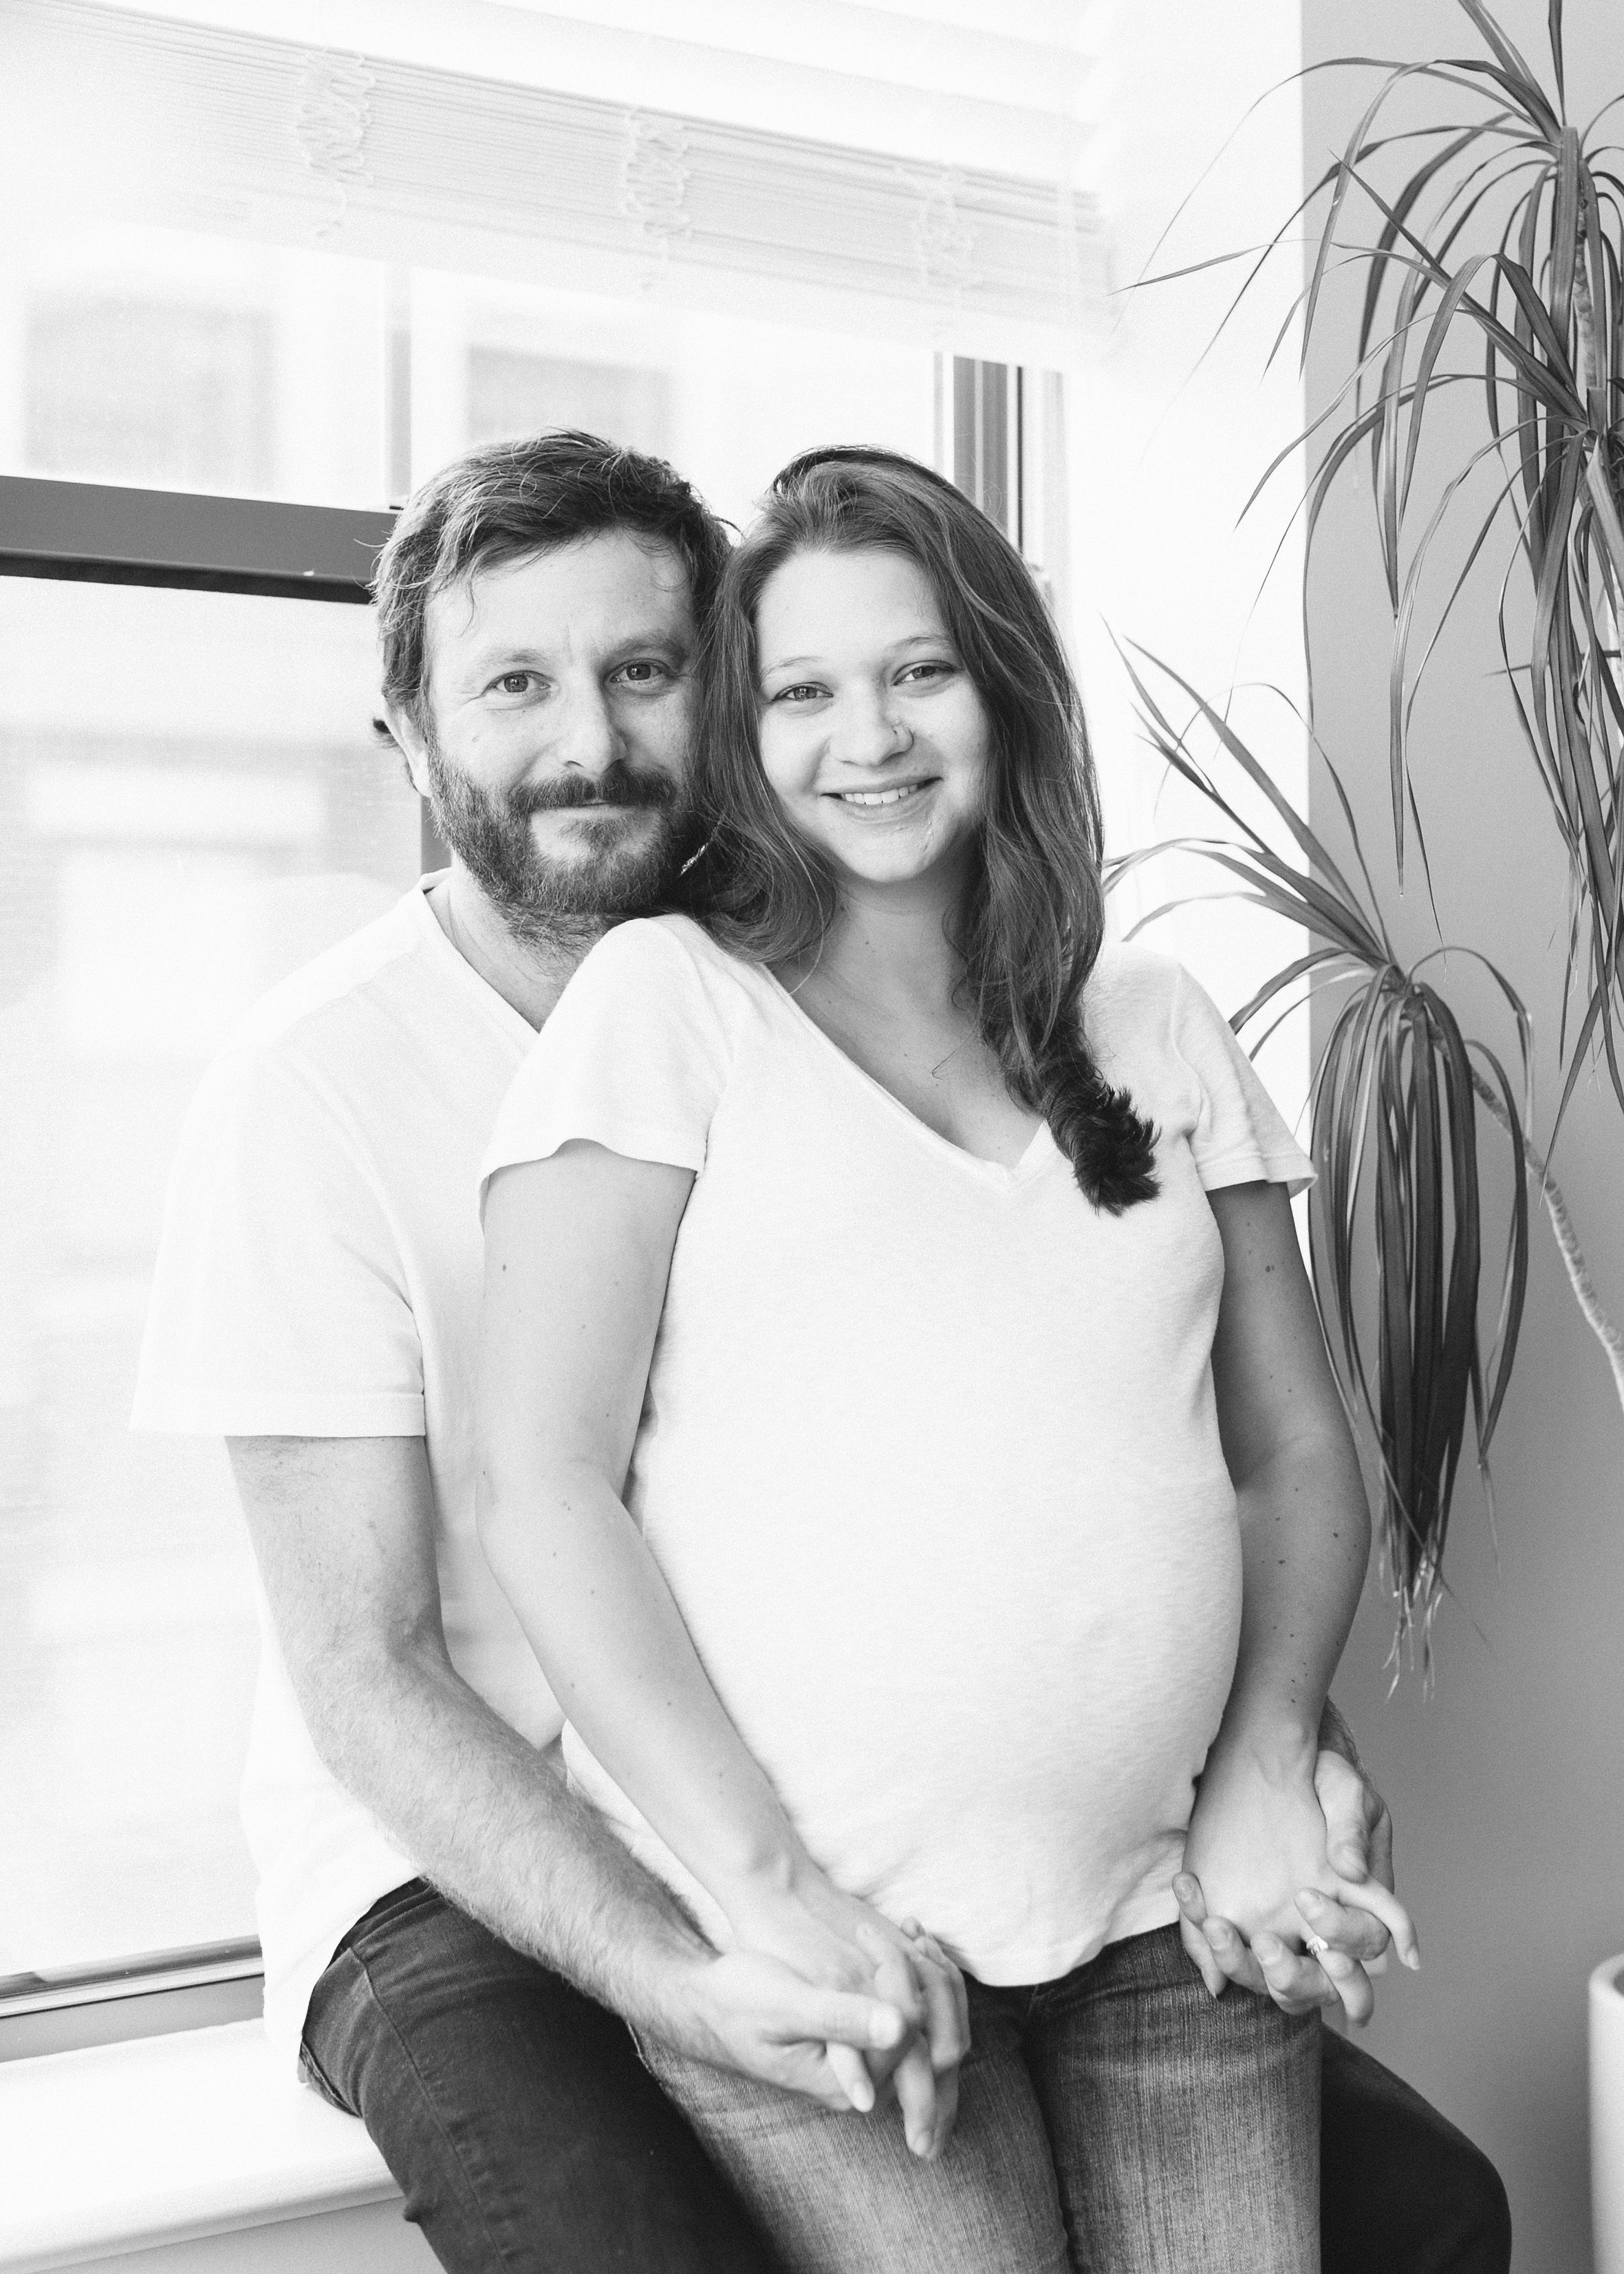 durham_nc_home_maternity_session